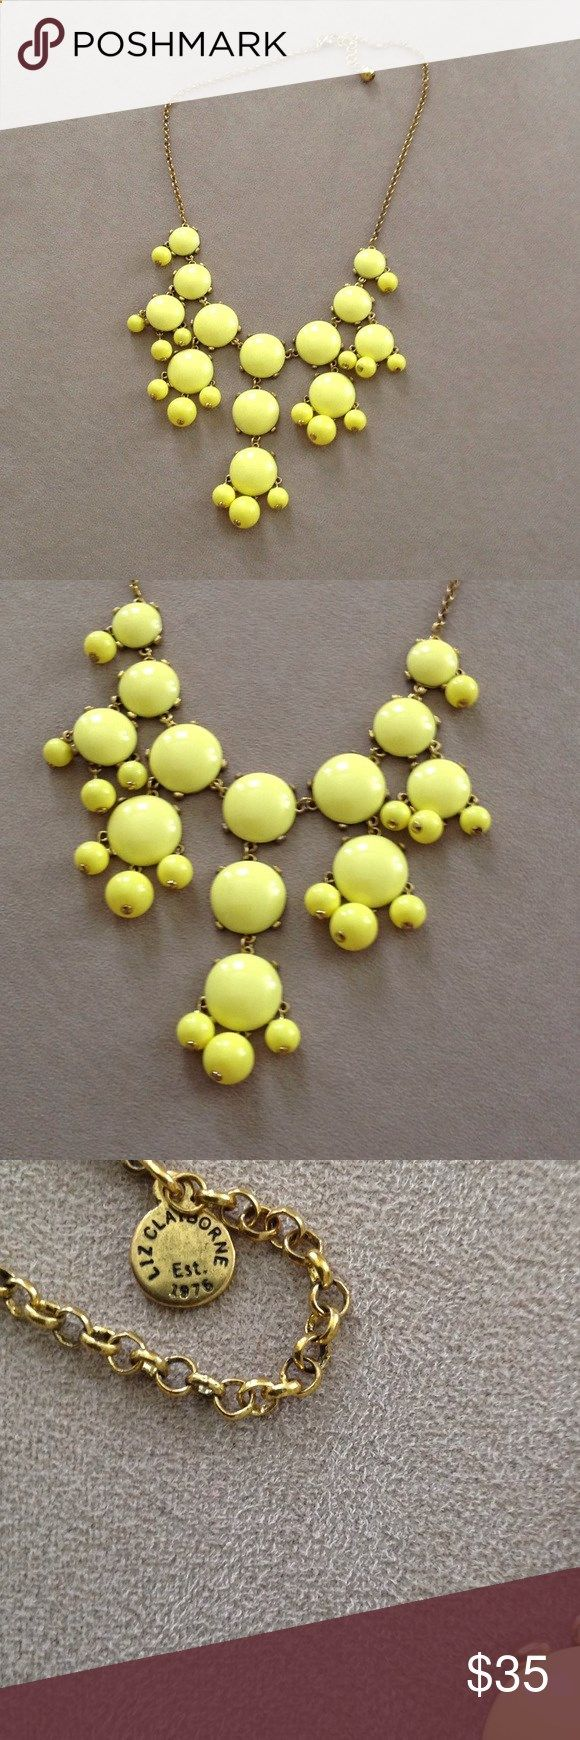 ✂️FINAL CUT✂️ NWOT Liz Claiborne Bubble Necklace Brand new. Never worn. Liz Claiborne yellow bubble necklace with antiqued gold chain. No modeling/trades. Reasonable offers welcome via the offer button. Liz Claiborne Jewelry Necklaces